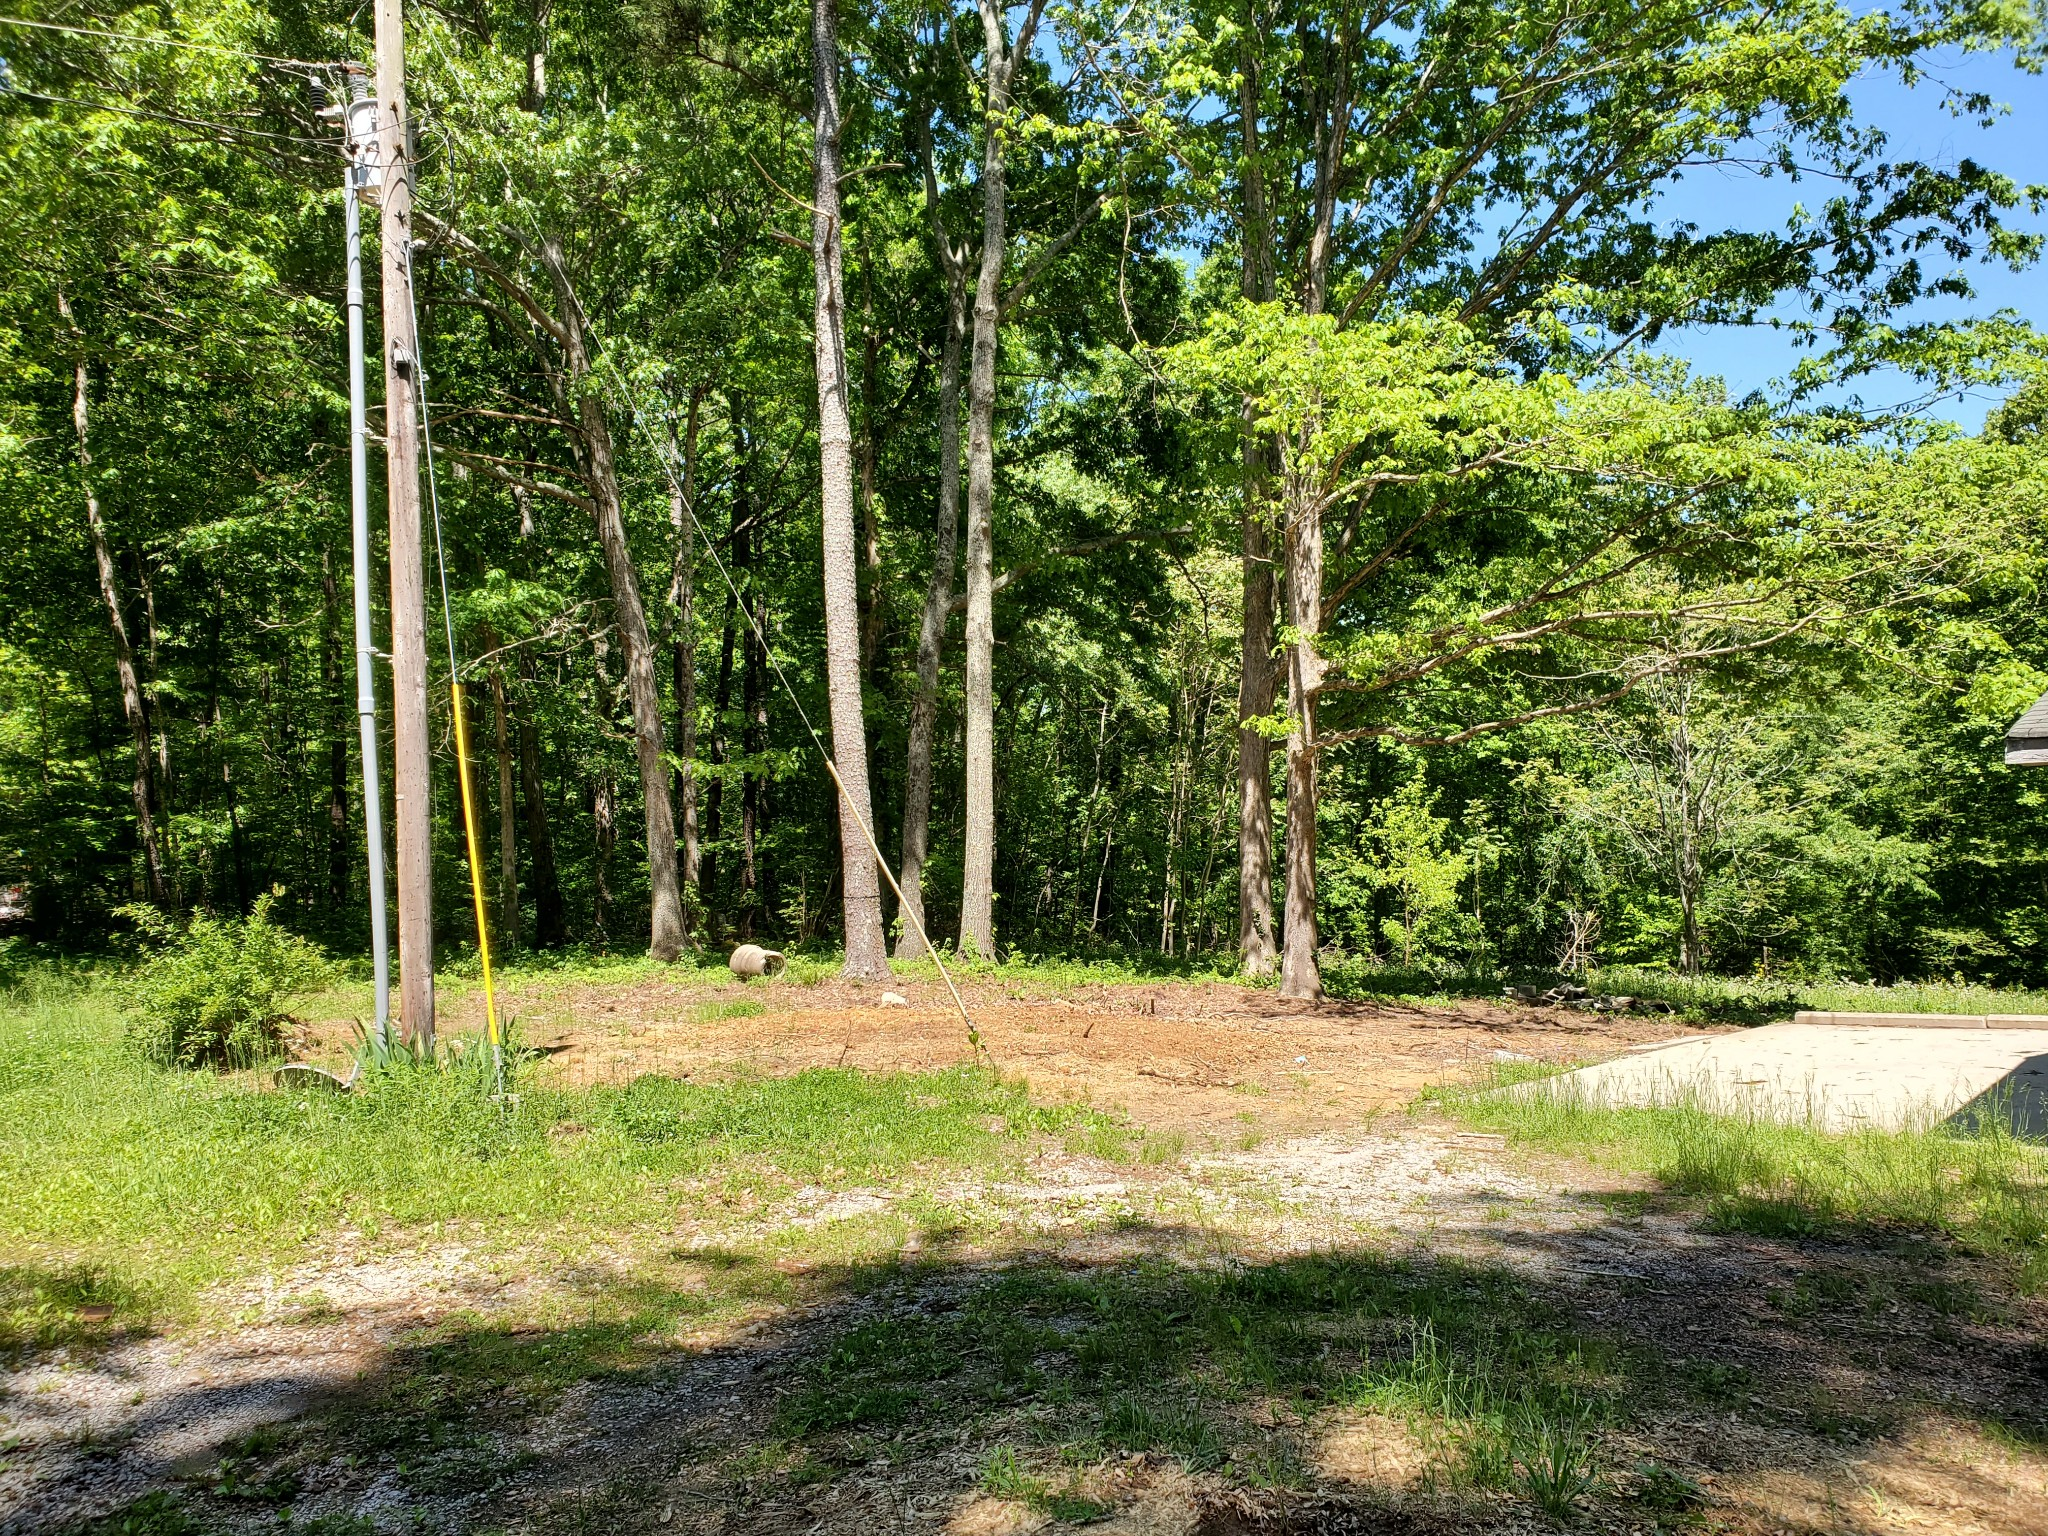 Great location near downtown Leipers Fork and just minutes off the Natchez Trace, 2.1 acre lot with house that needs a total remodel, new under ground electrical service just installed. Septic in place, well water, city water at road. Large lot with mature trees. Large storage building included.